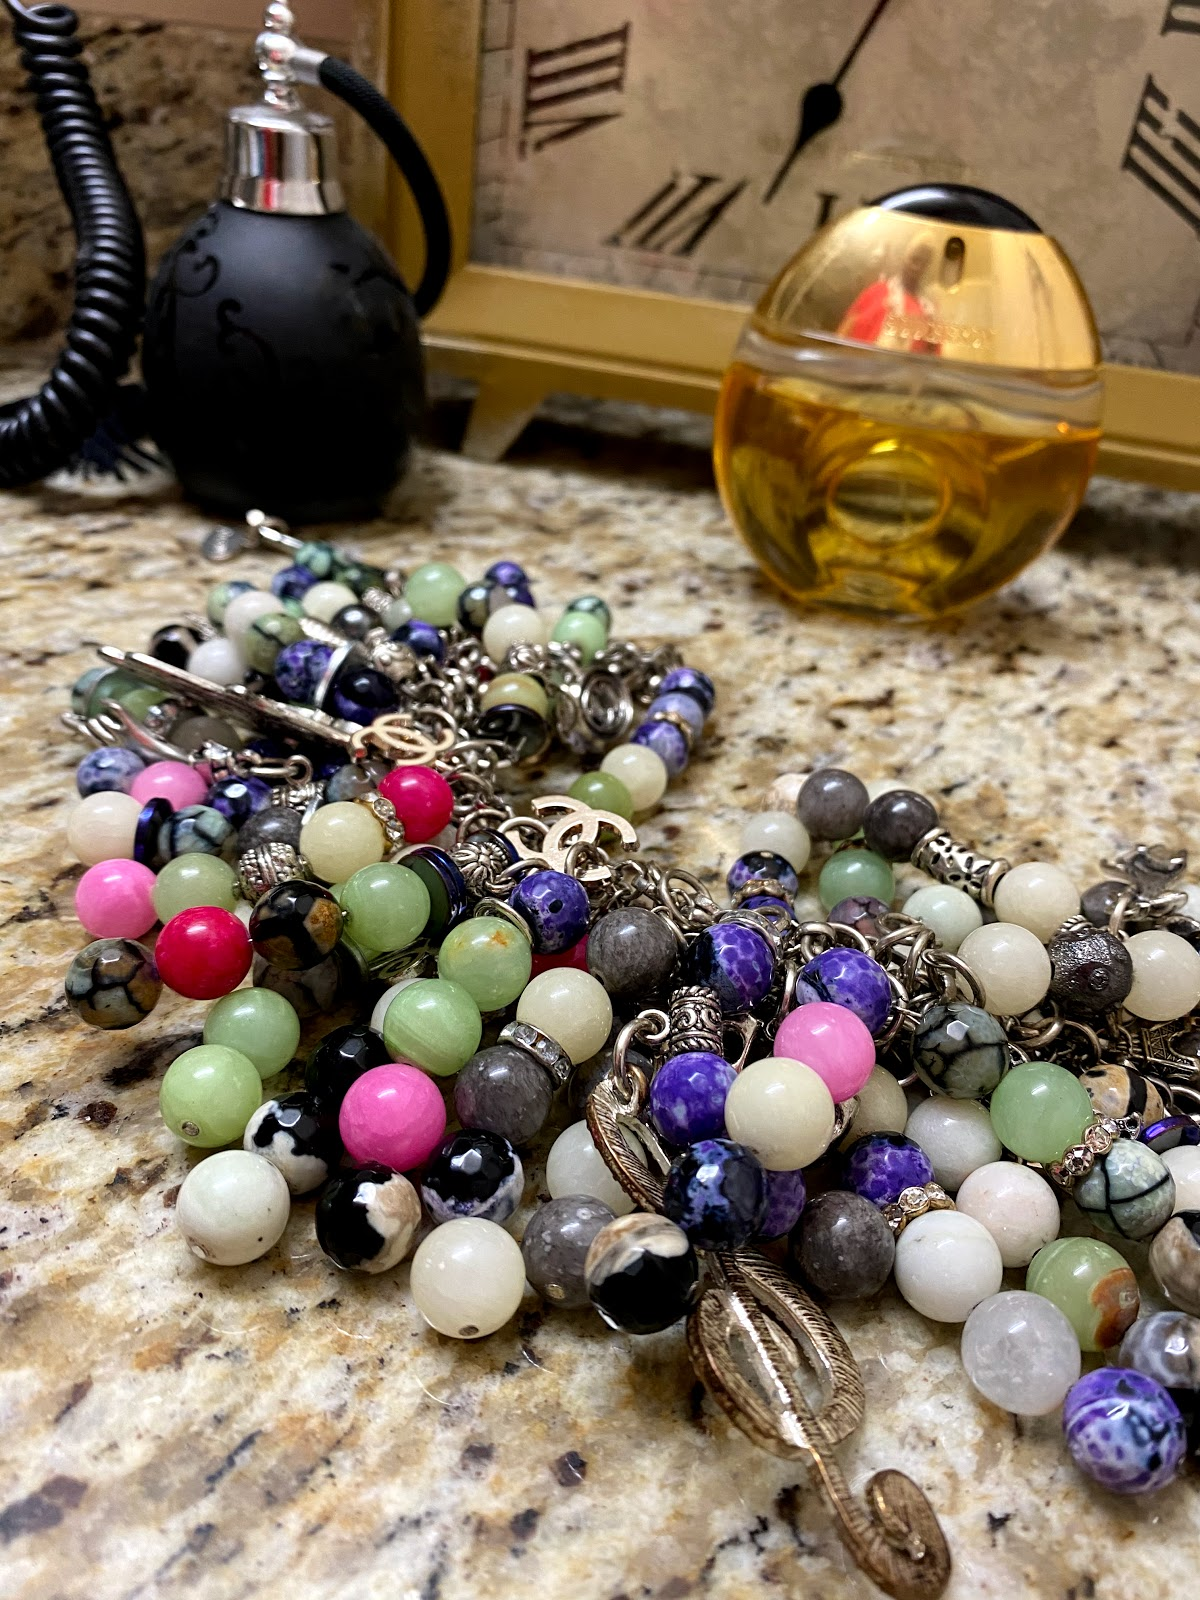 Broken necklace turned into arm candy bracelets by Tangie Bell.Hobby Bits: Oh Hey Girl, Let's Get Frugal And Make Some Junk!